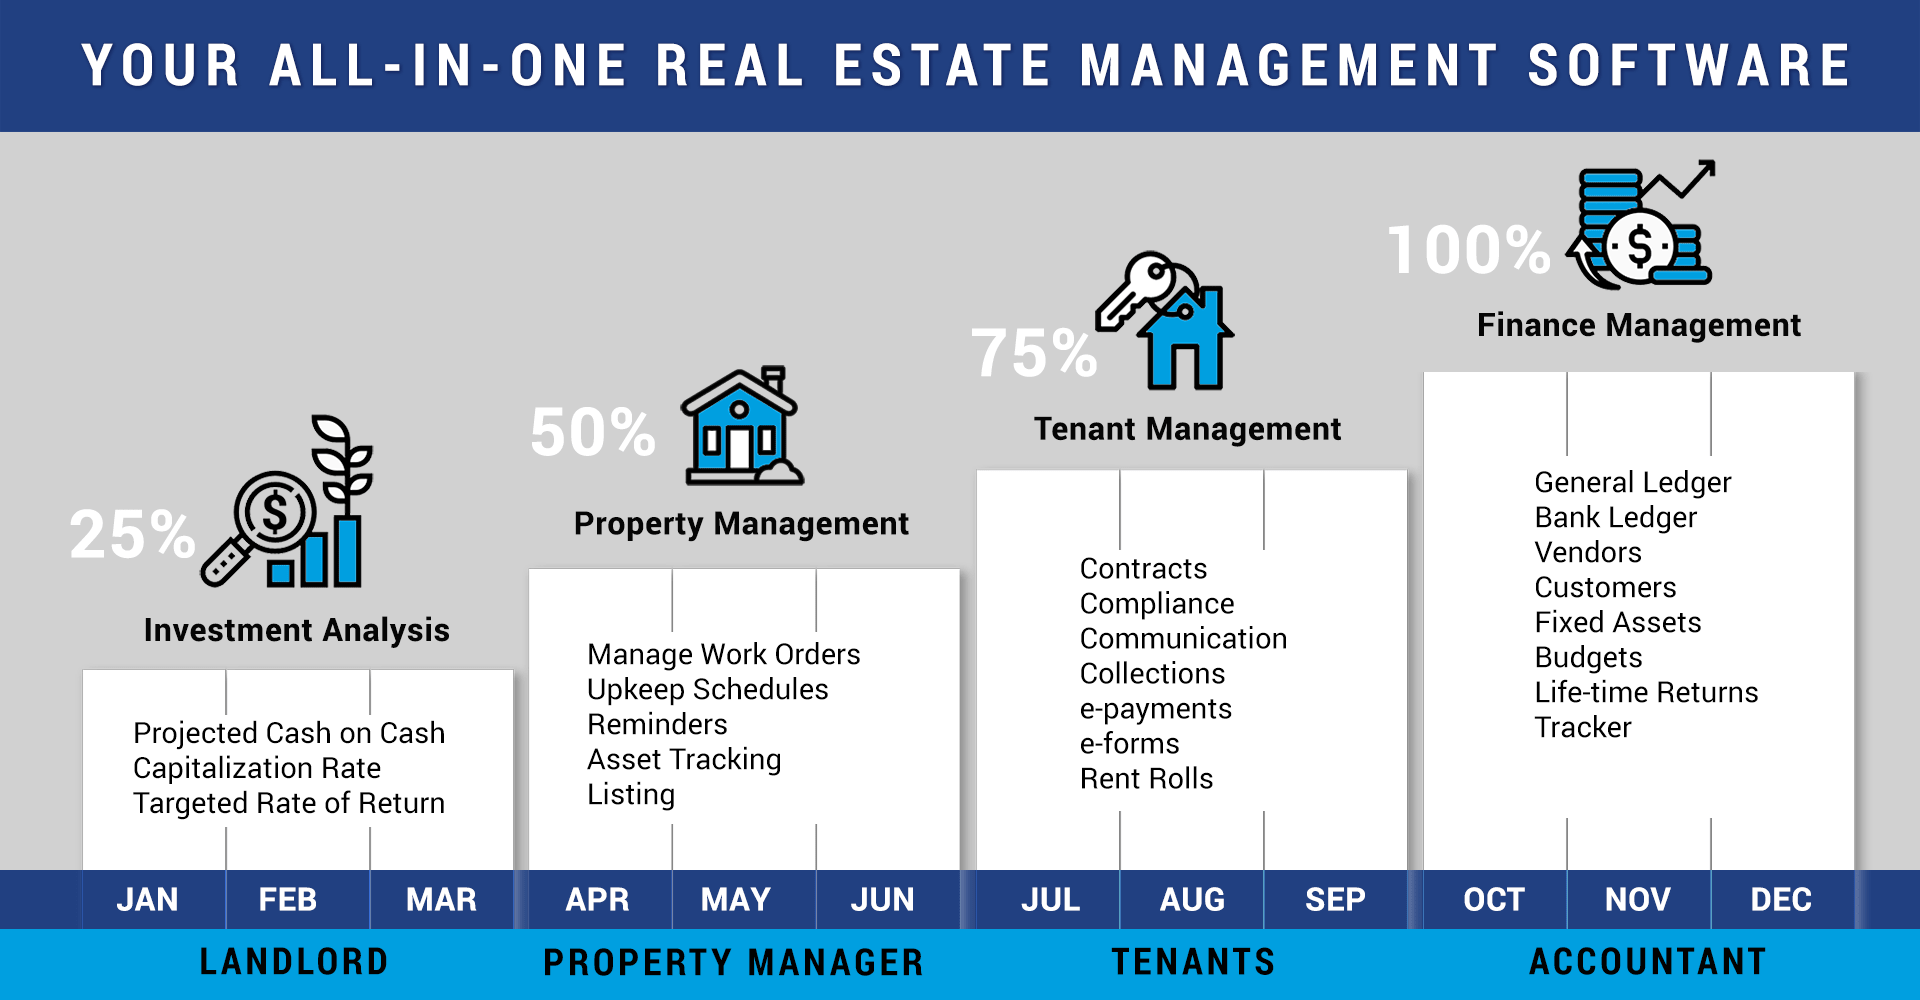 Real Estate Investments All in one software